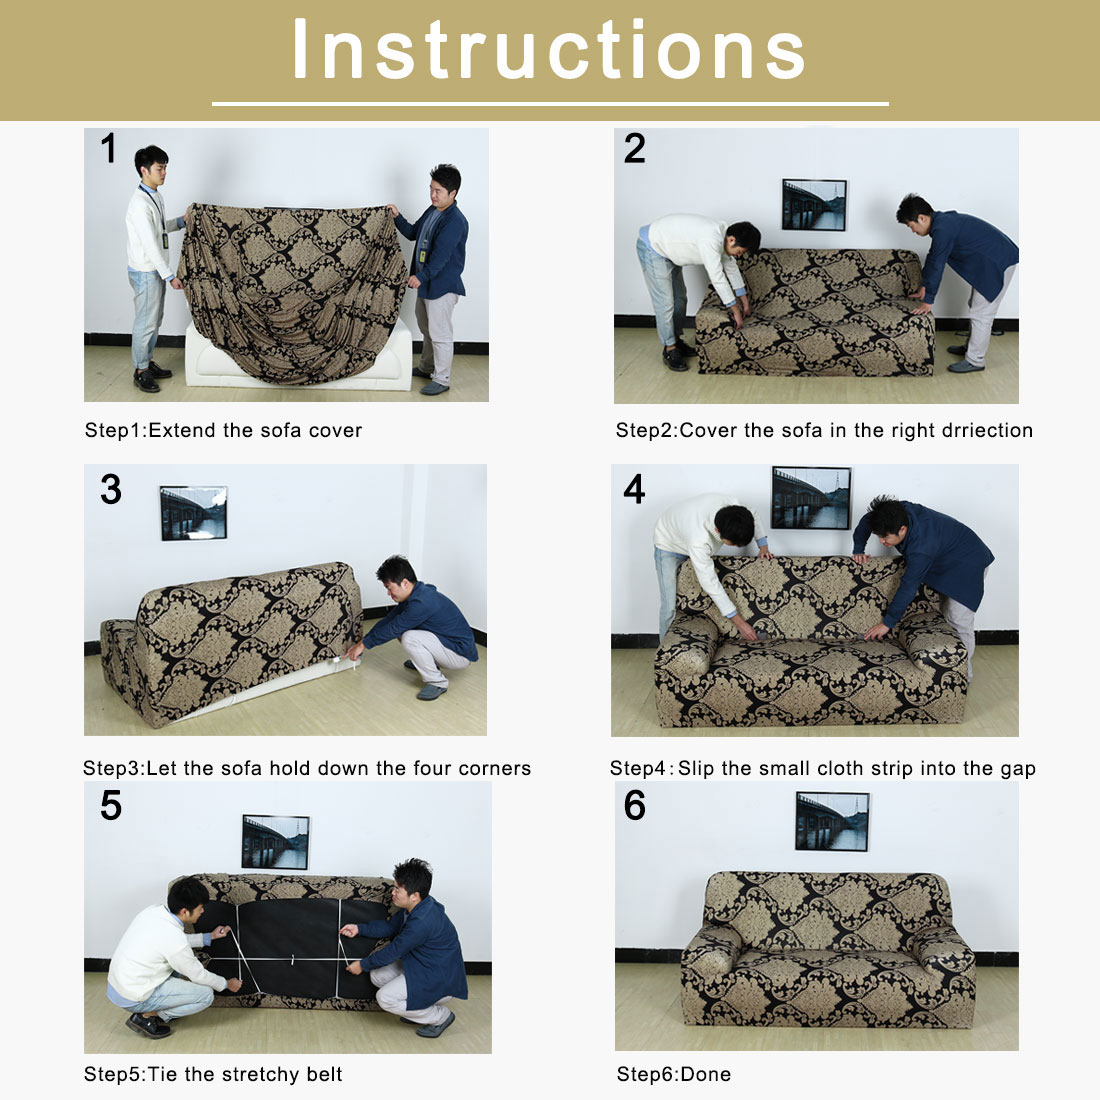 Chair Sofa Cover 1 2 3 4 Seater Cover Protector Slipcover #3 (35 x 55 Inch) - image 4 de 7